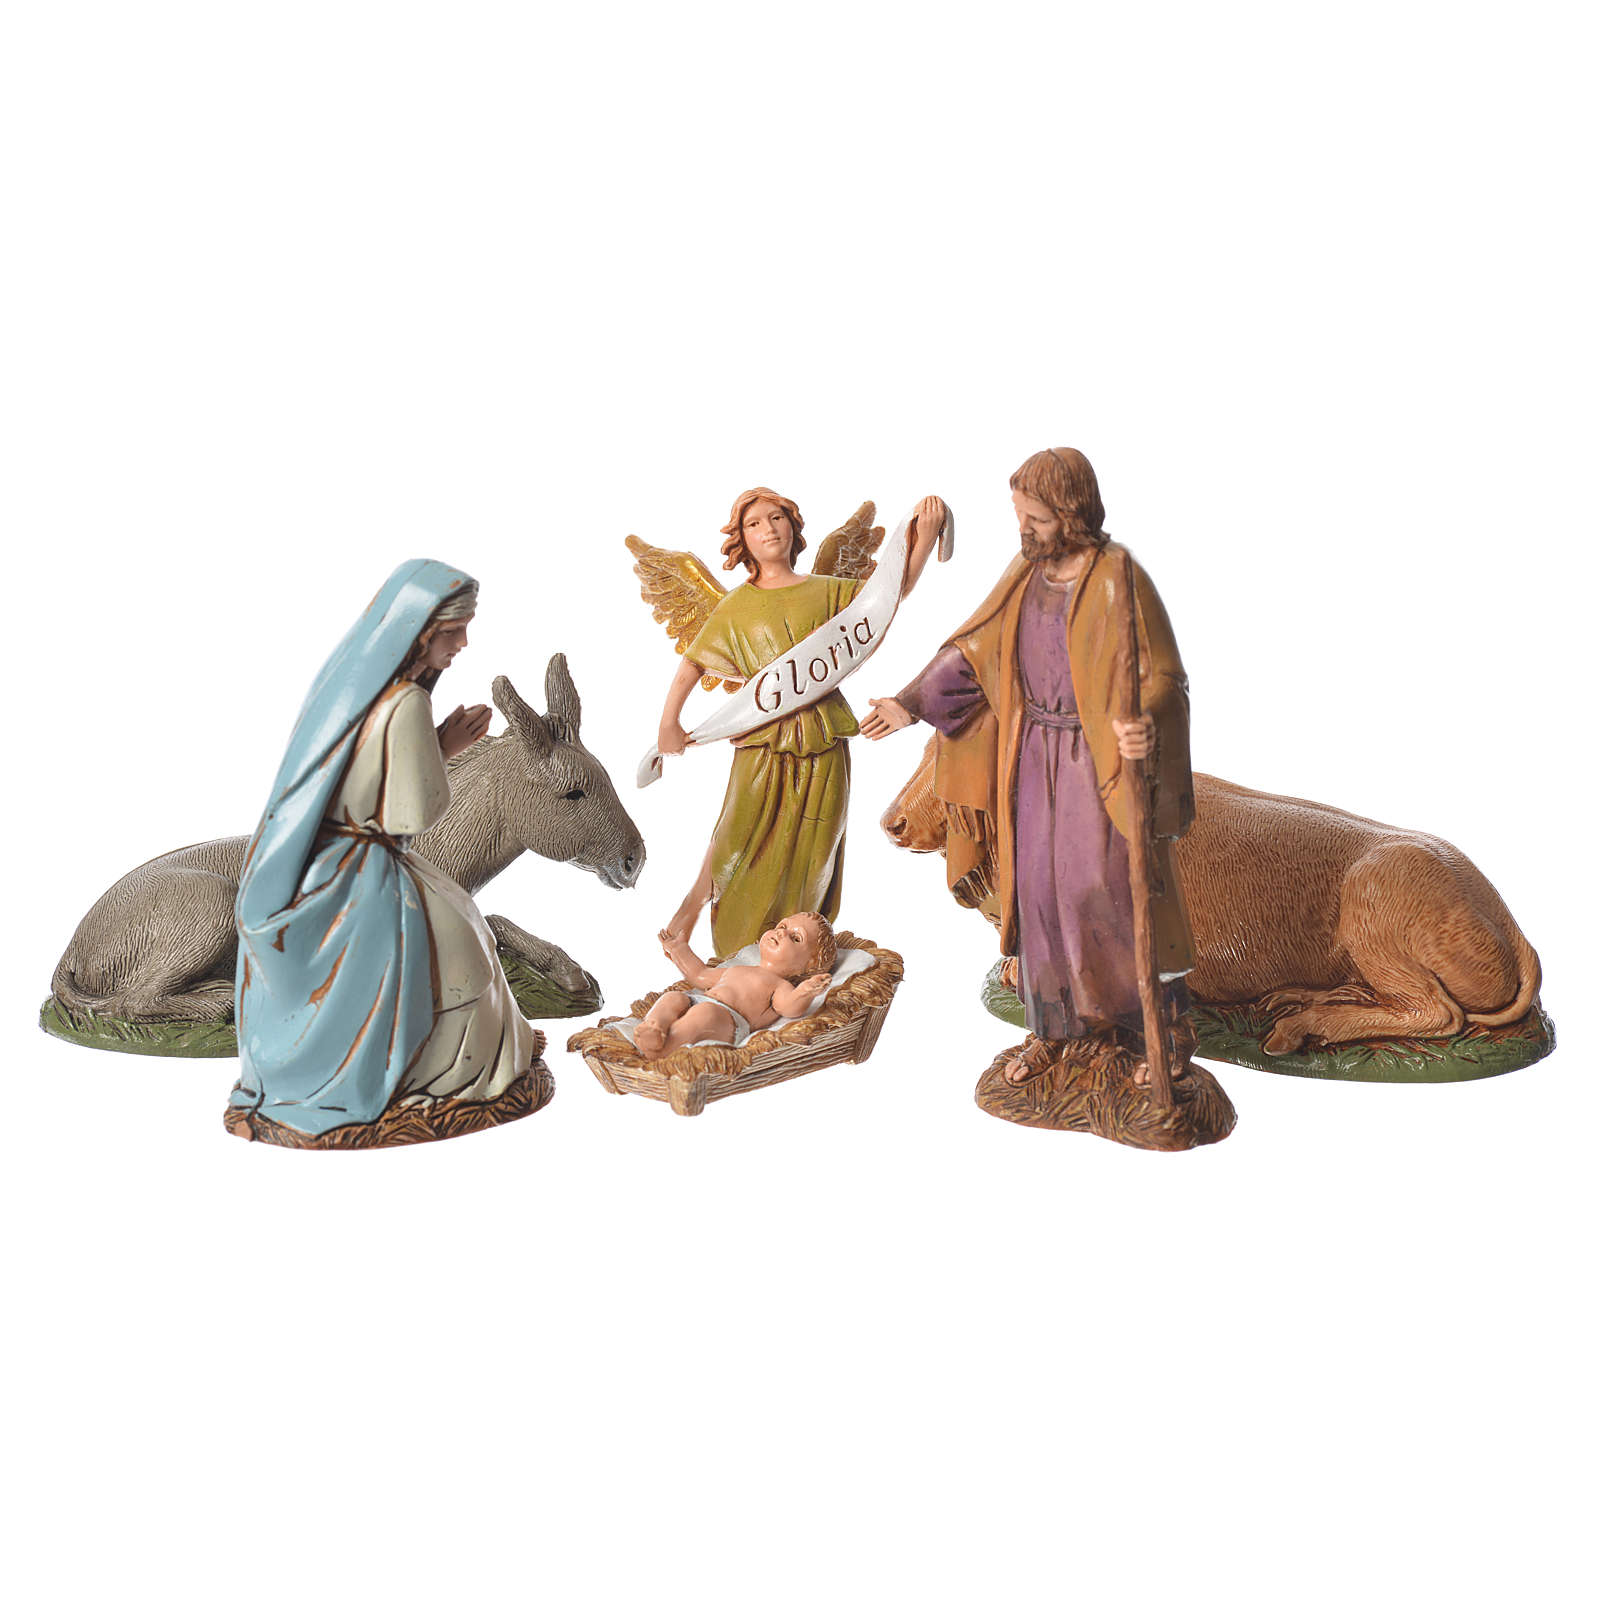 Nativity Scene figurines aged finish by Moranduzzo 10cm 4